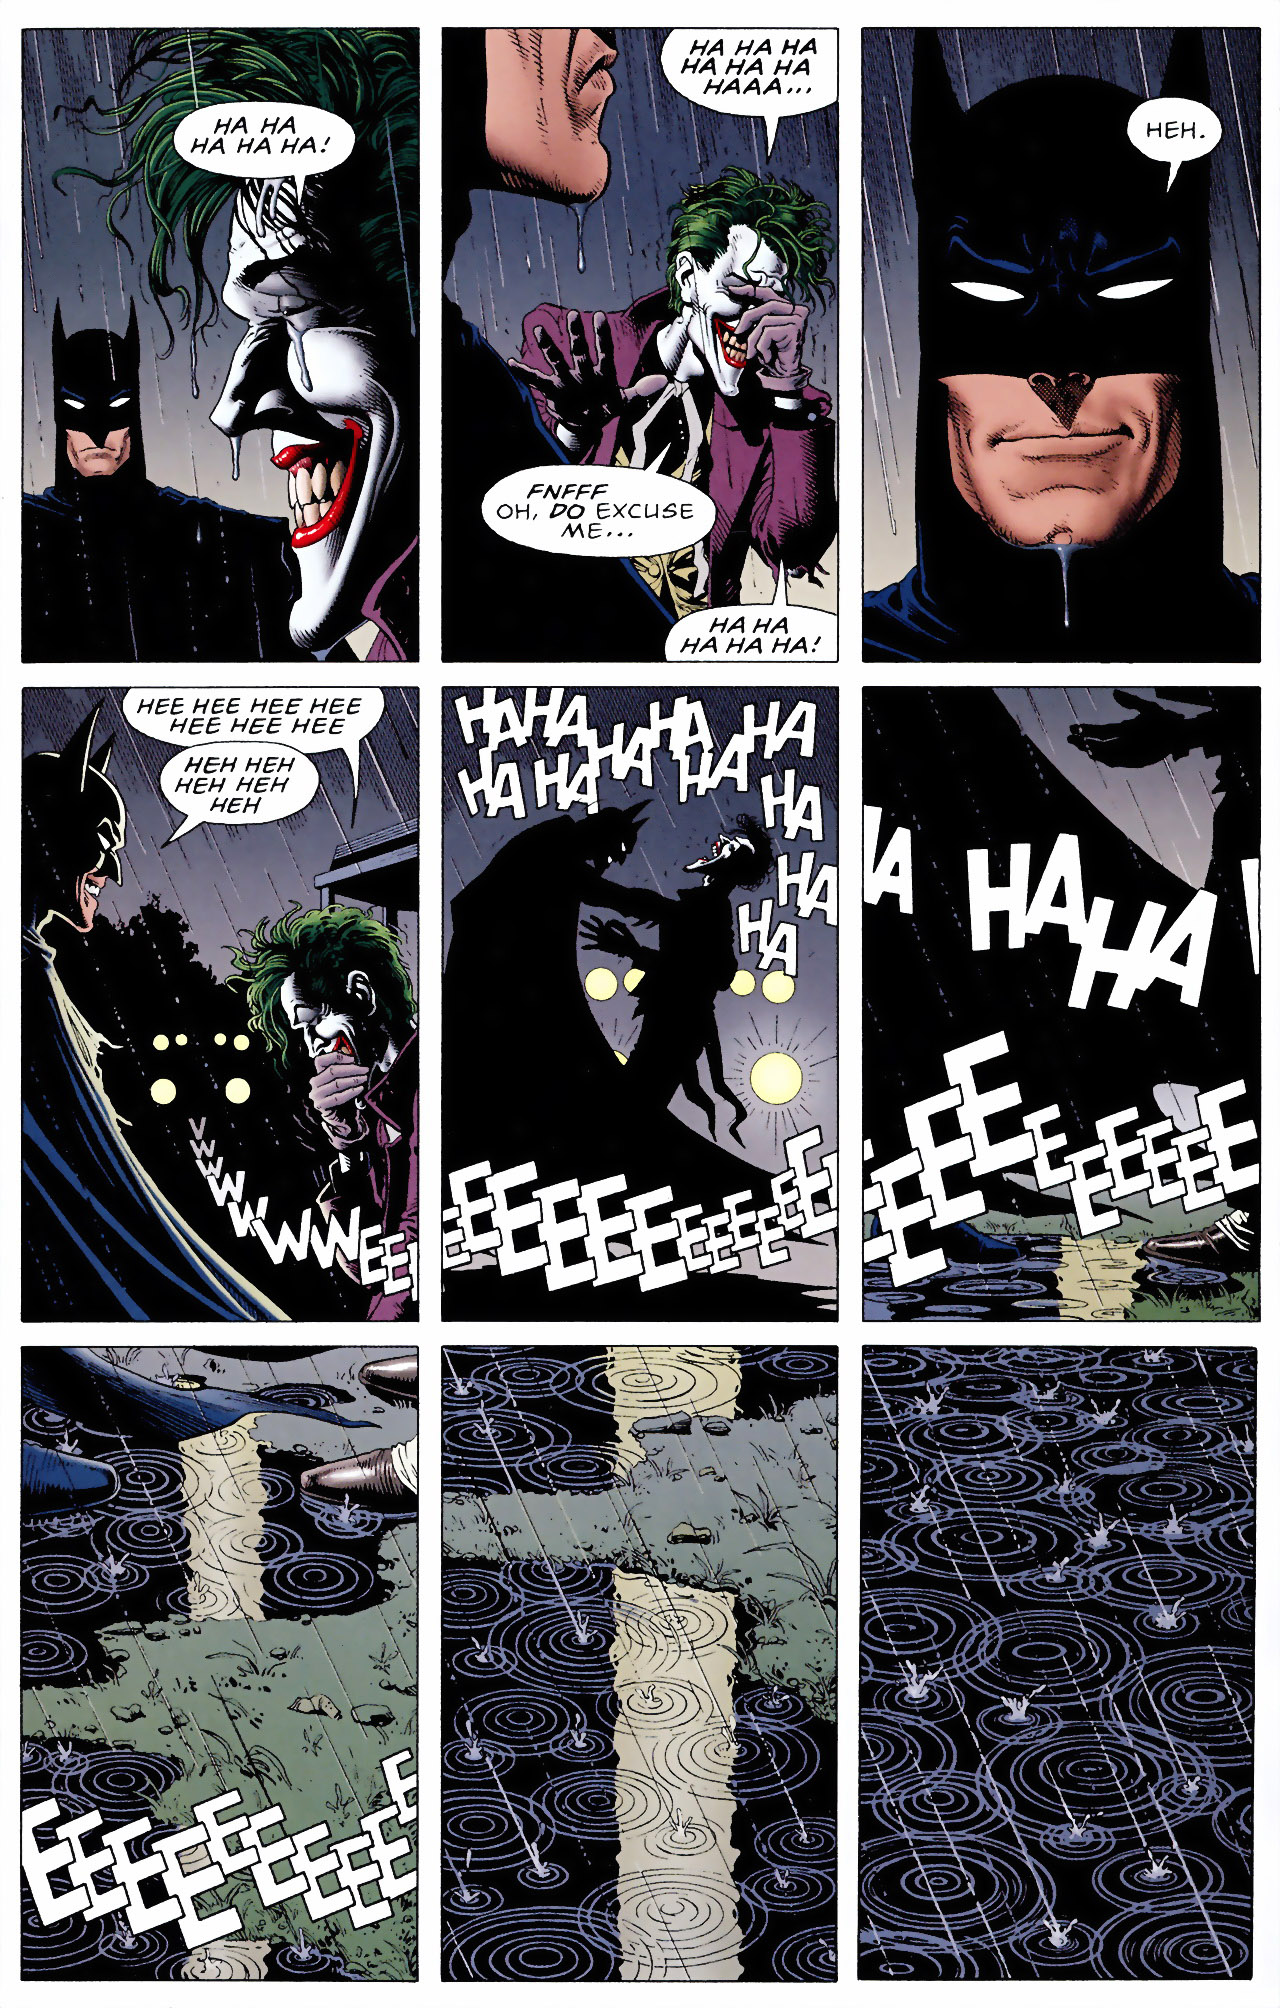 The last page of the Killing Joke